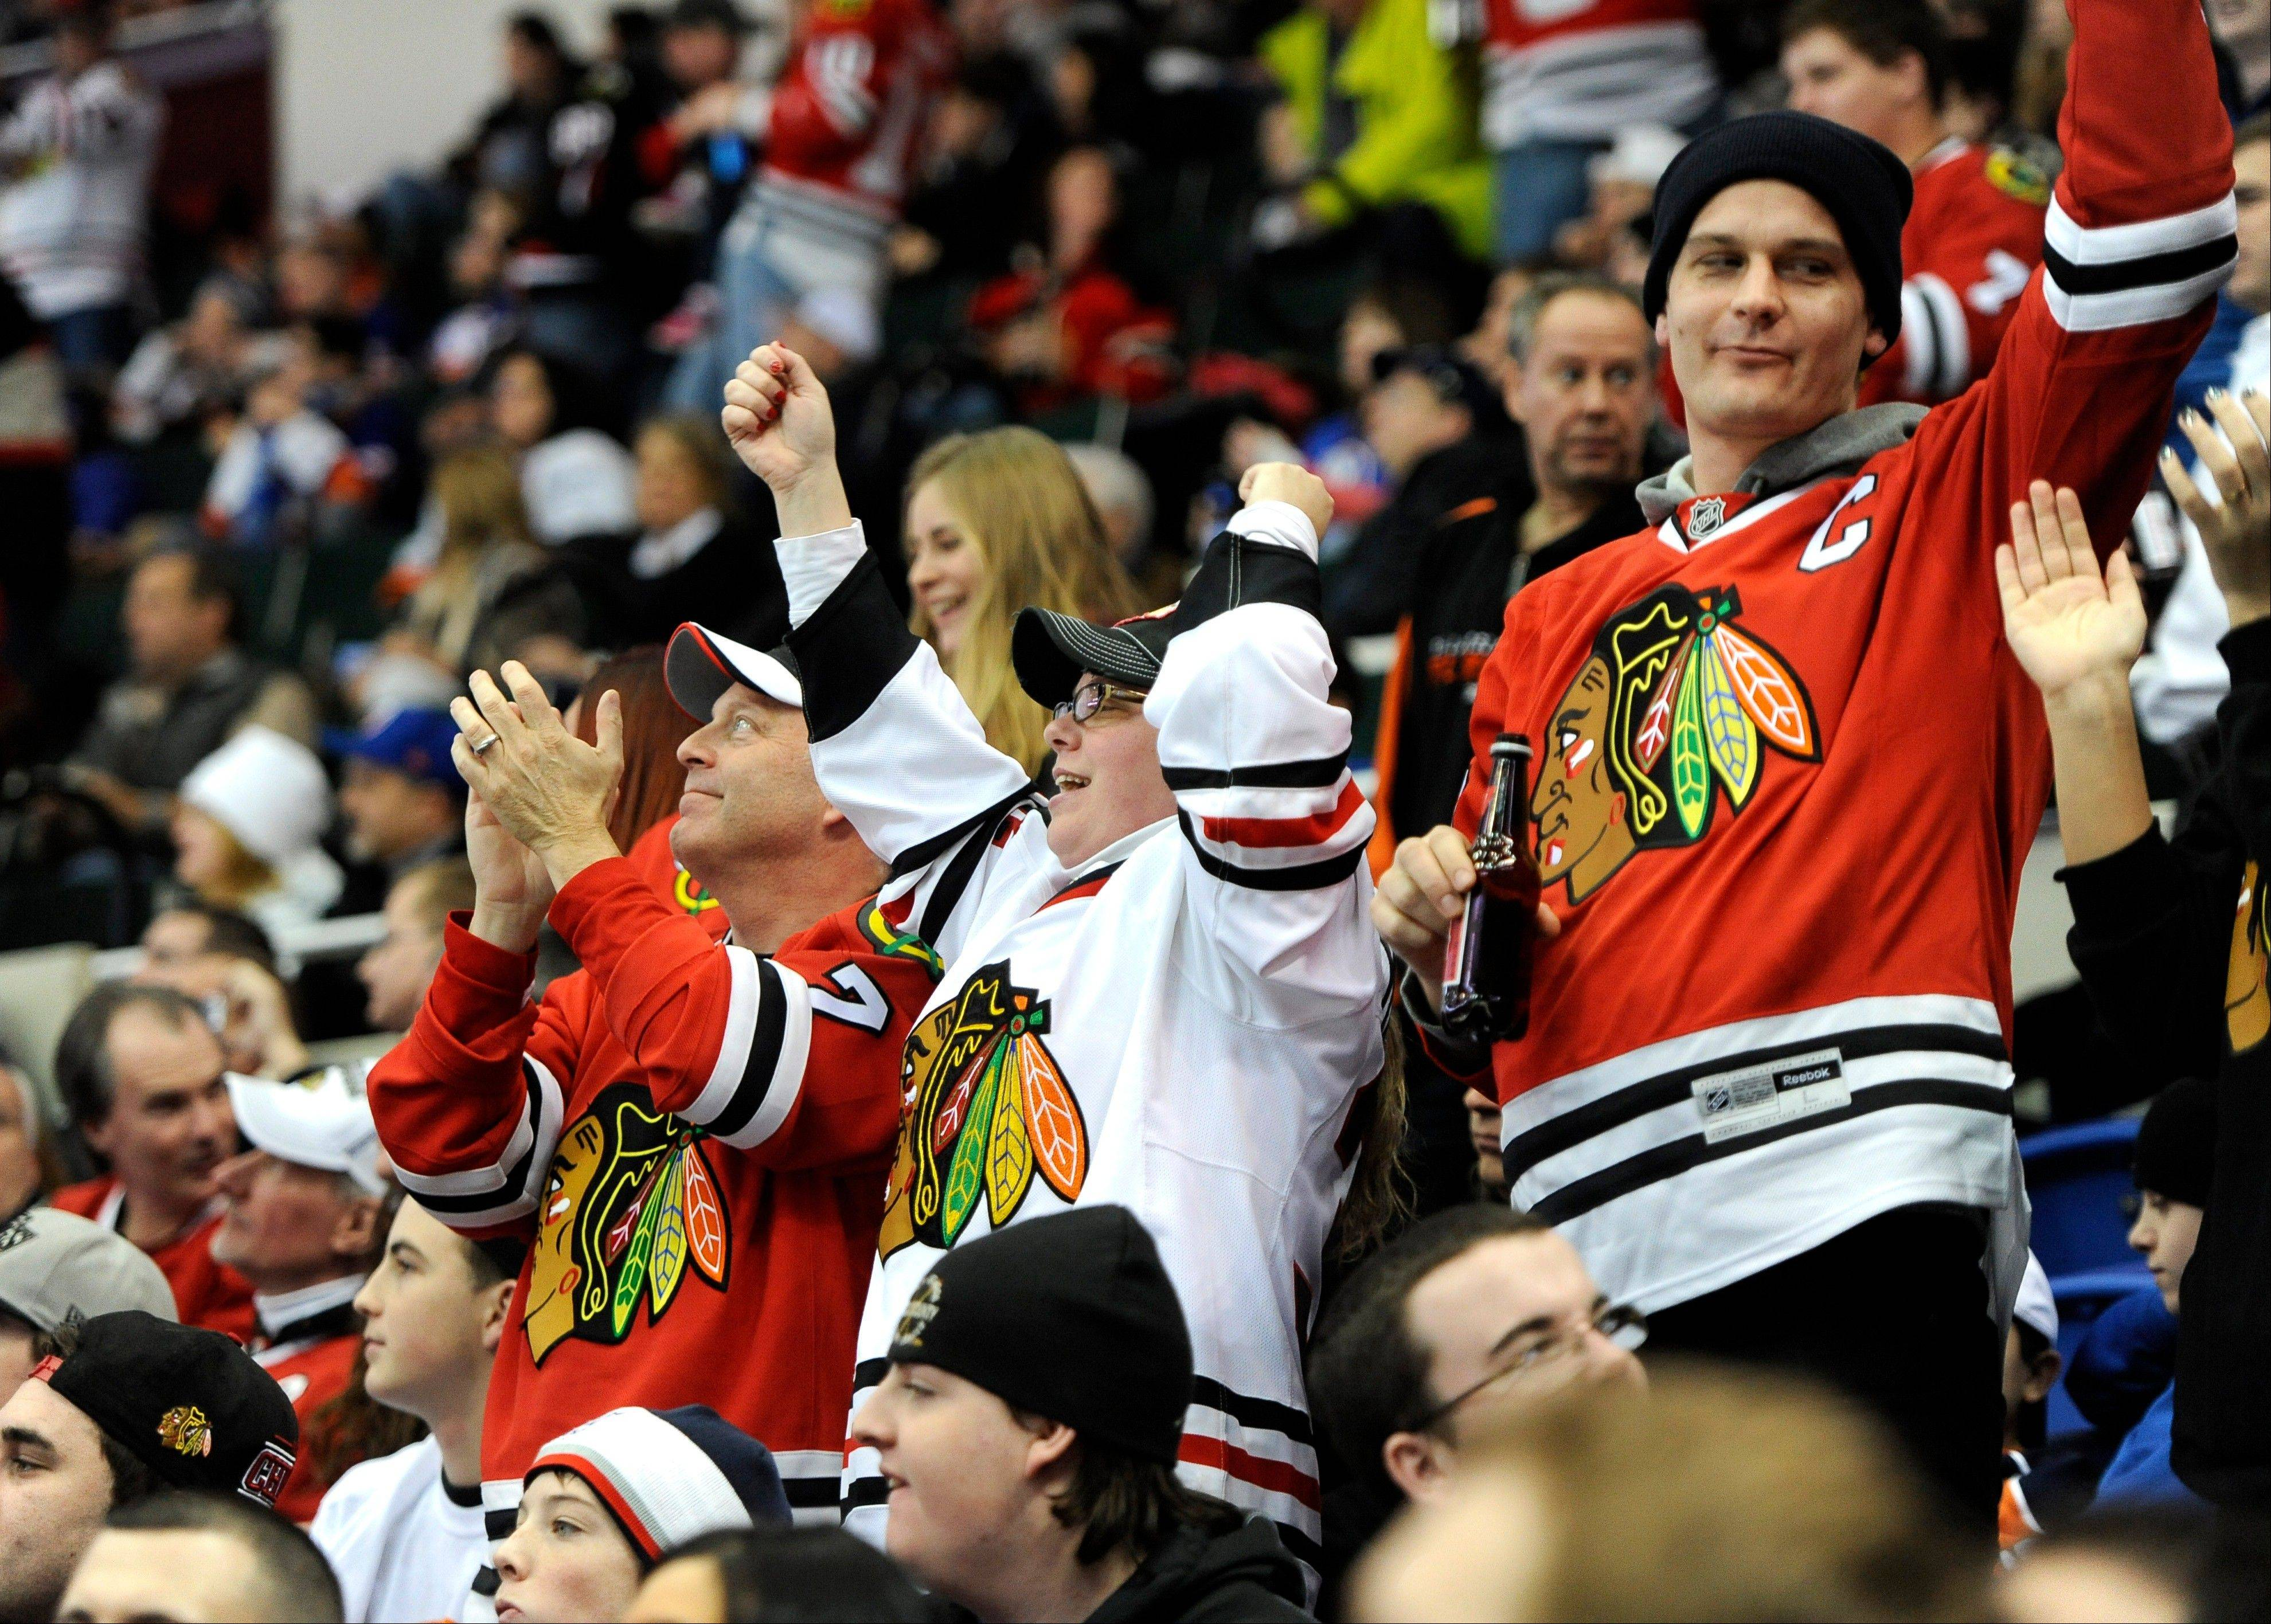 Blackhawks fans should have more to celebrate in 2014, but the rest of Chicago's pro franchises likely won't come close to any championship.